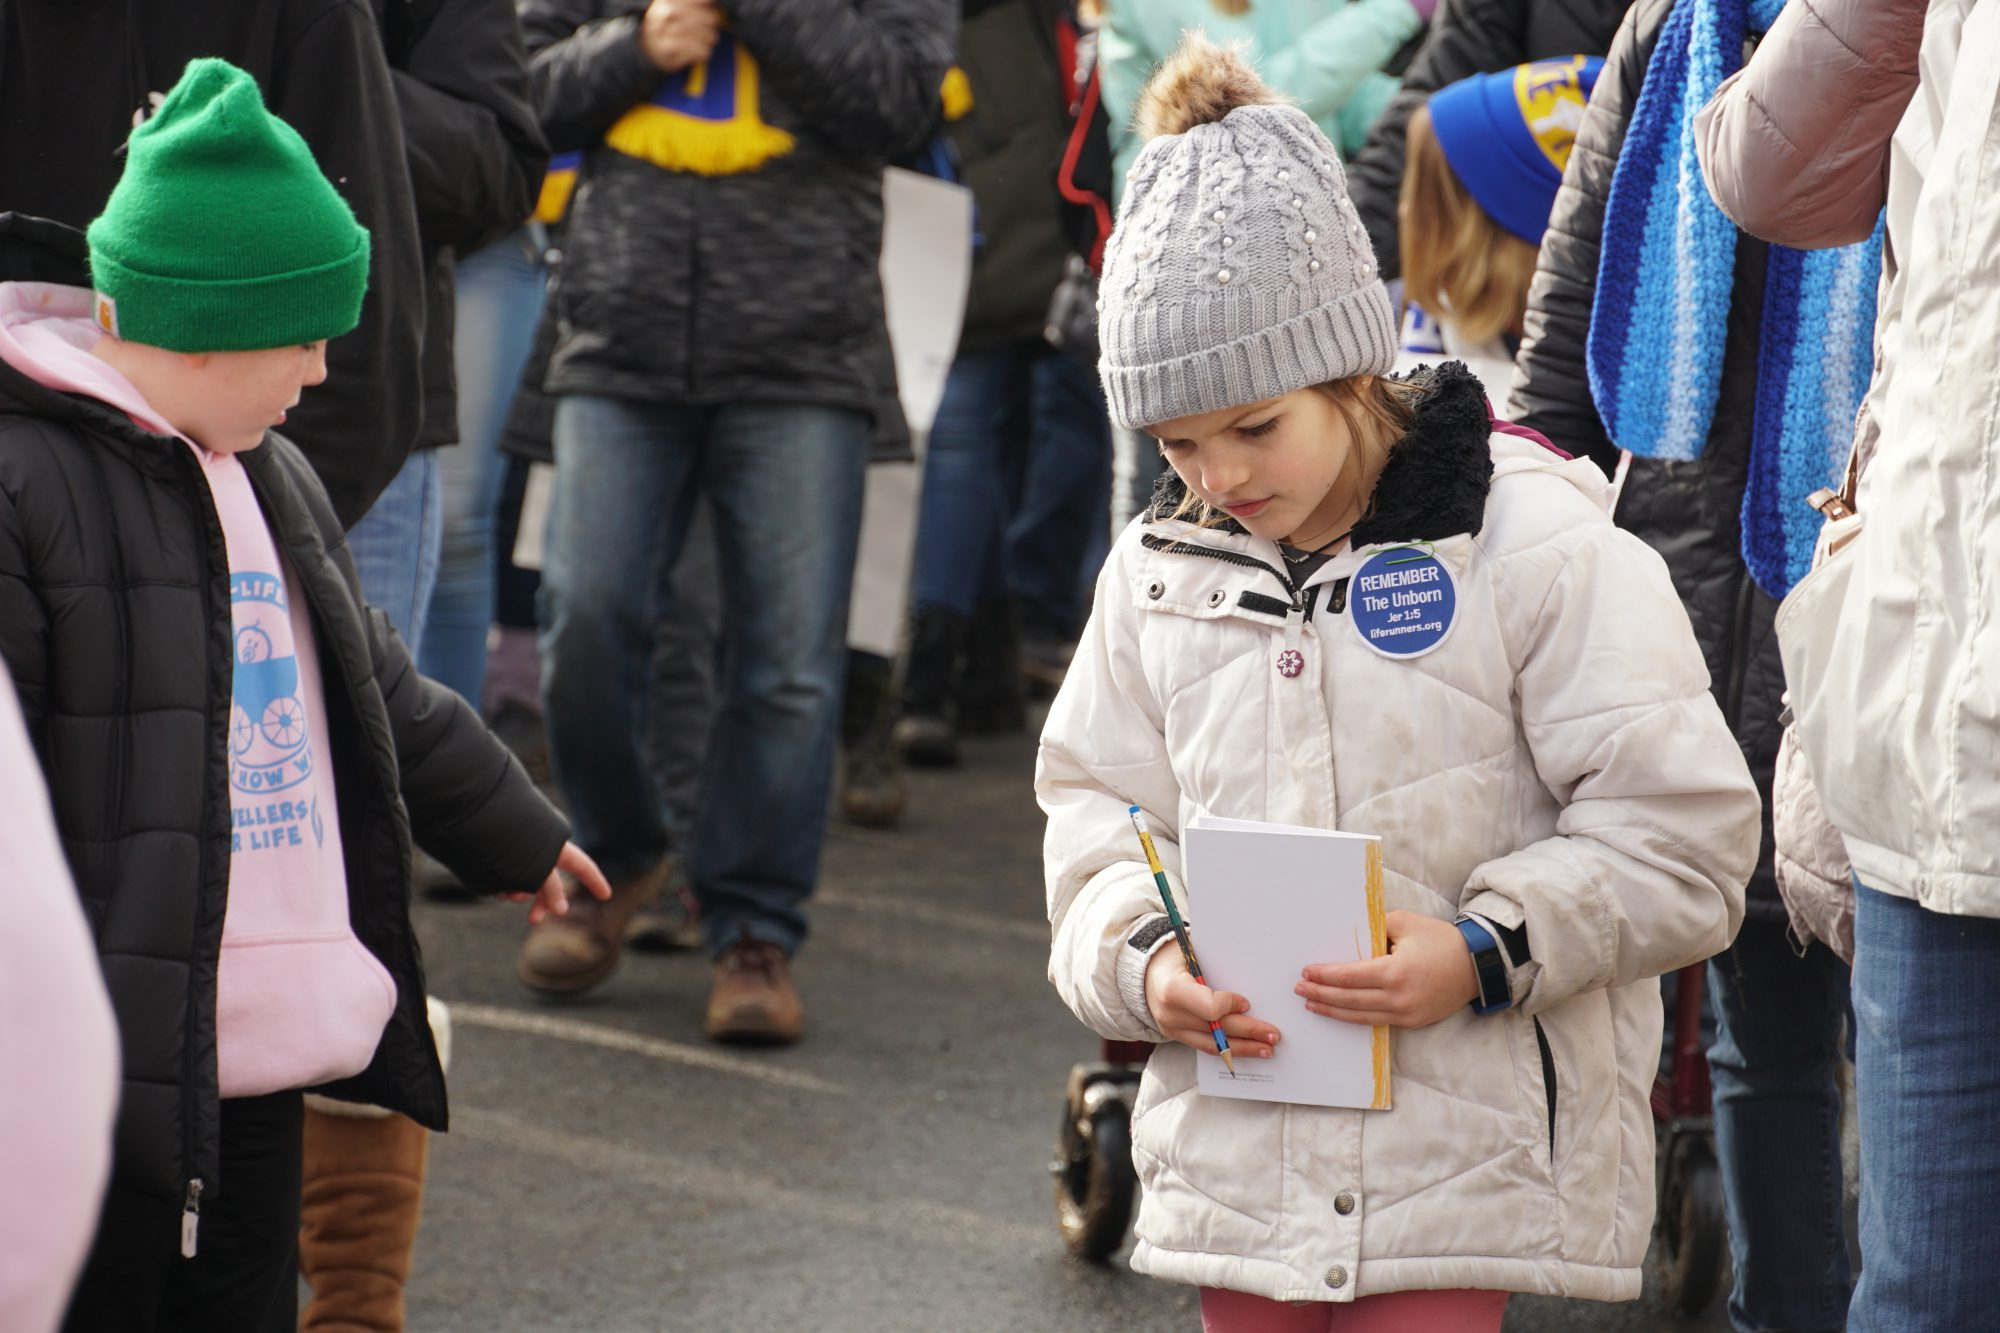 Young children also attended the March for Life with their parents. (Ester Wells/MNS)